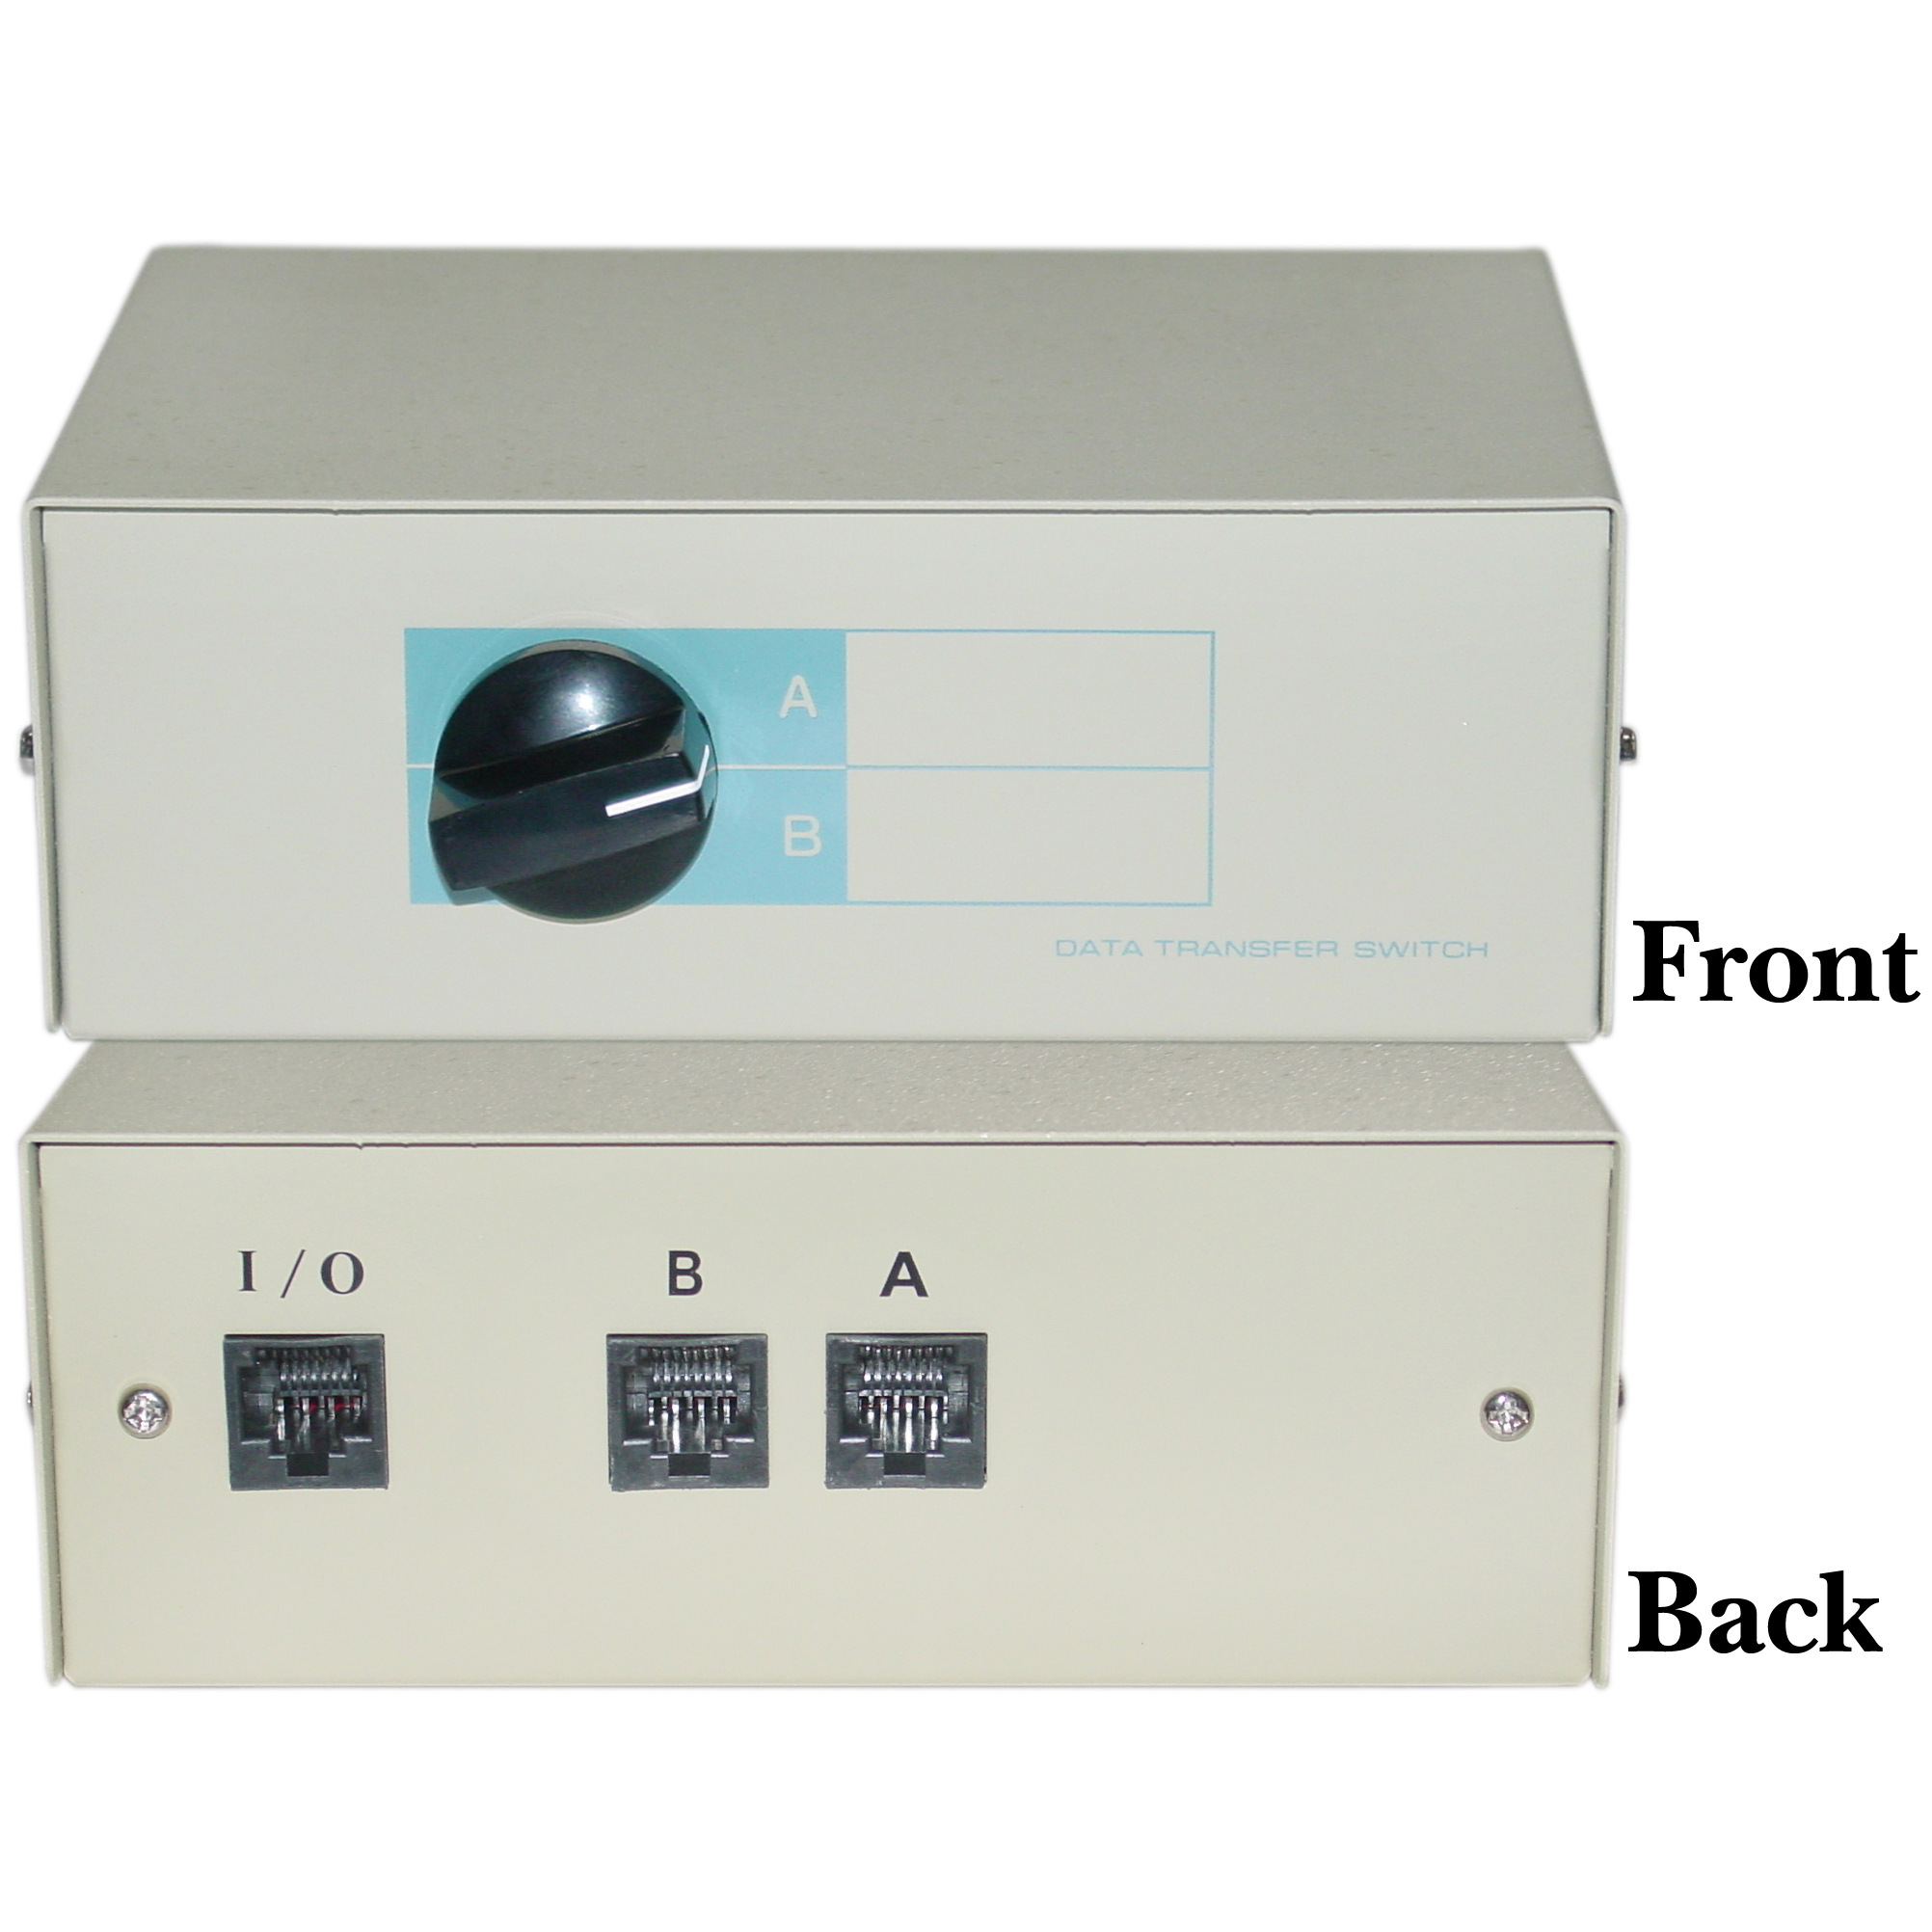 2 Way RJ45 Female Telephone Network Manual Switch Box, AB